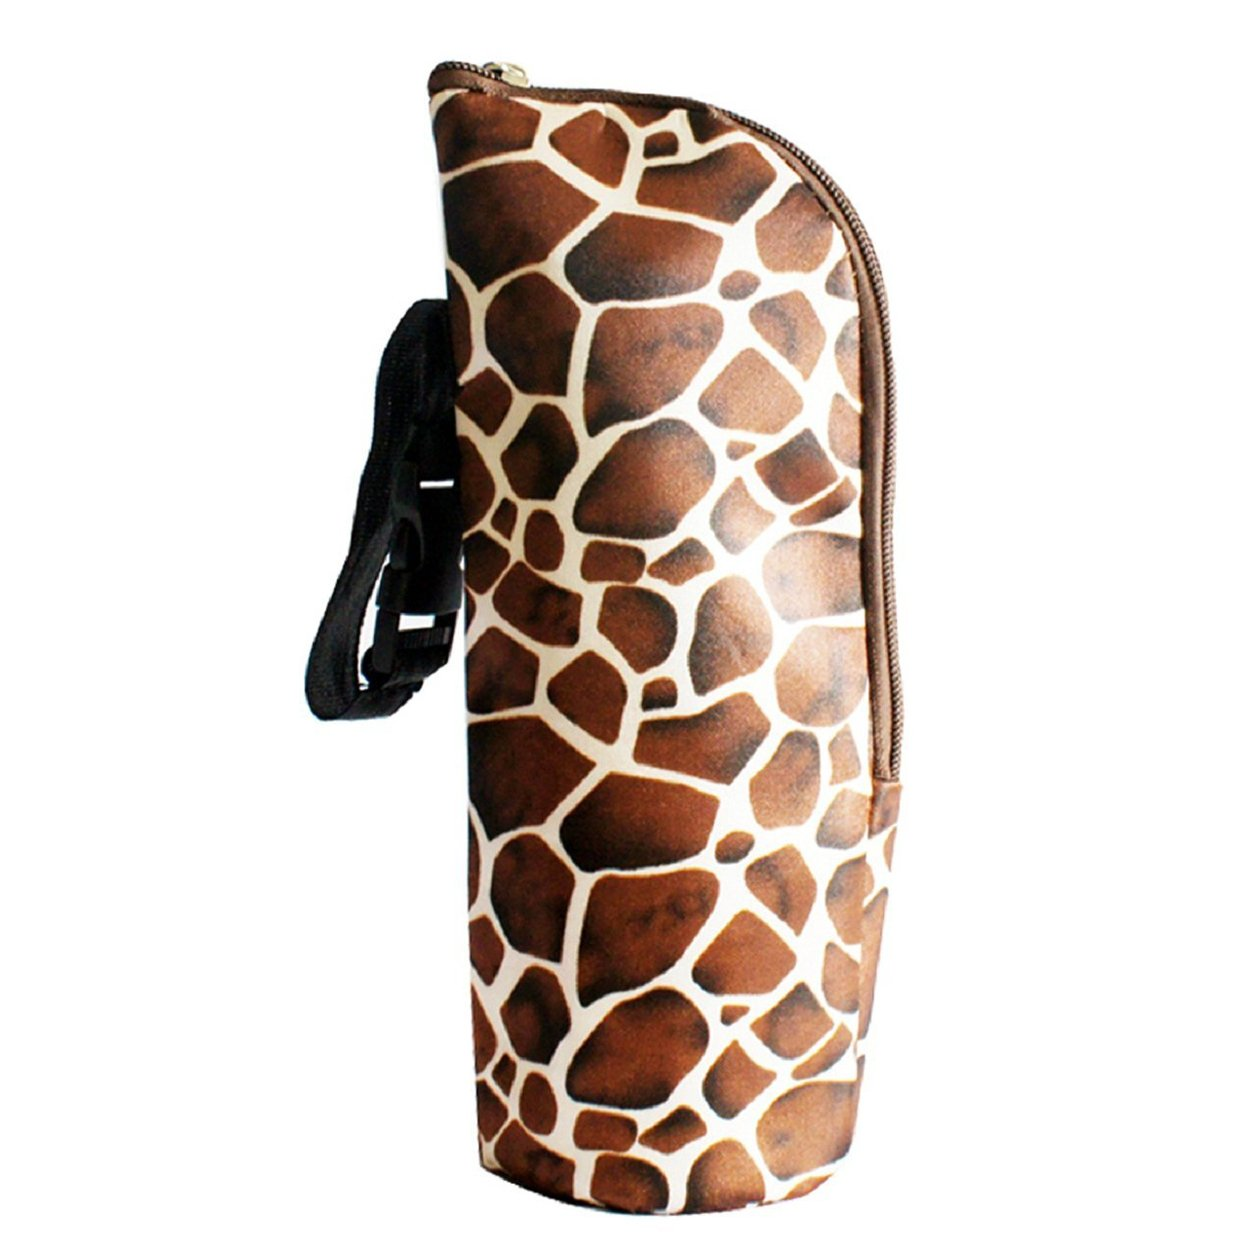 Feeding Bottle Tote Bag - SODIAL(R)Baby Thermal Feeding Bottle Warmers Mummy Tote Bag Hang Stroller Brown£¨Snakeskin£© 073575A4